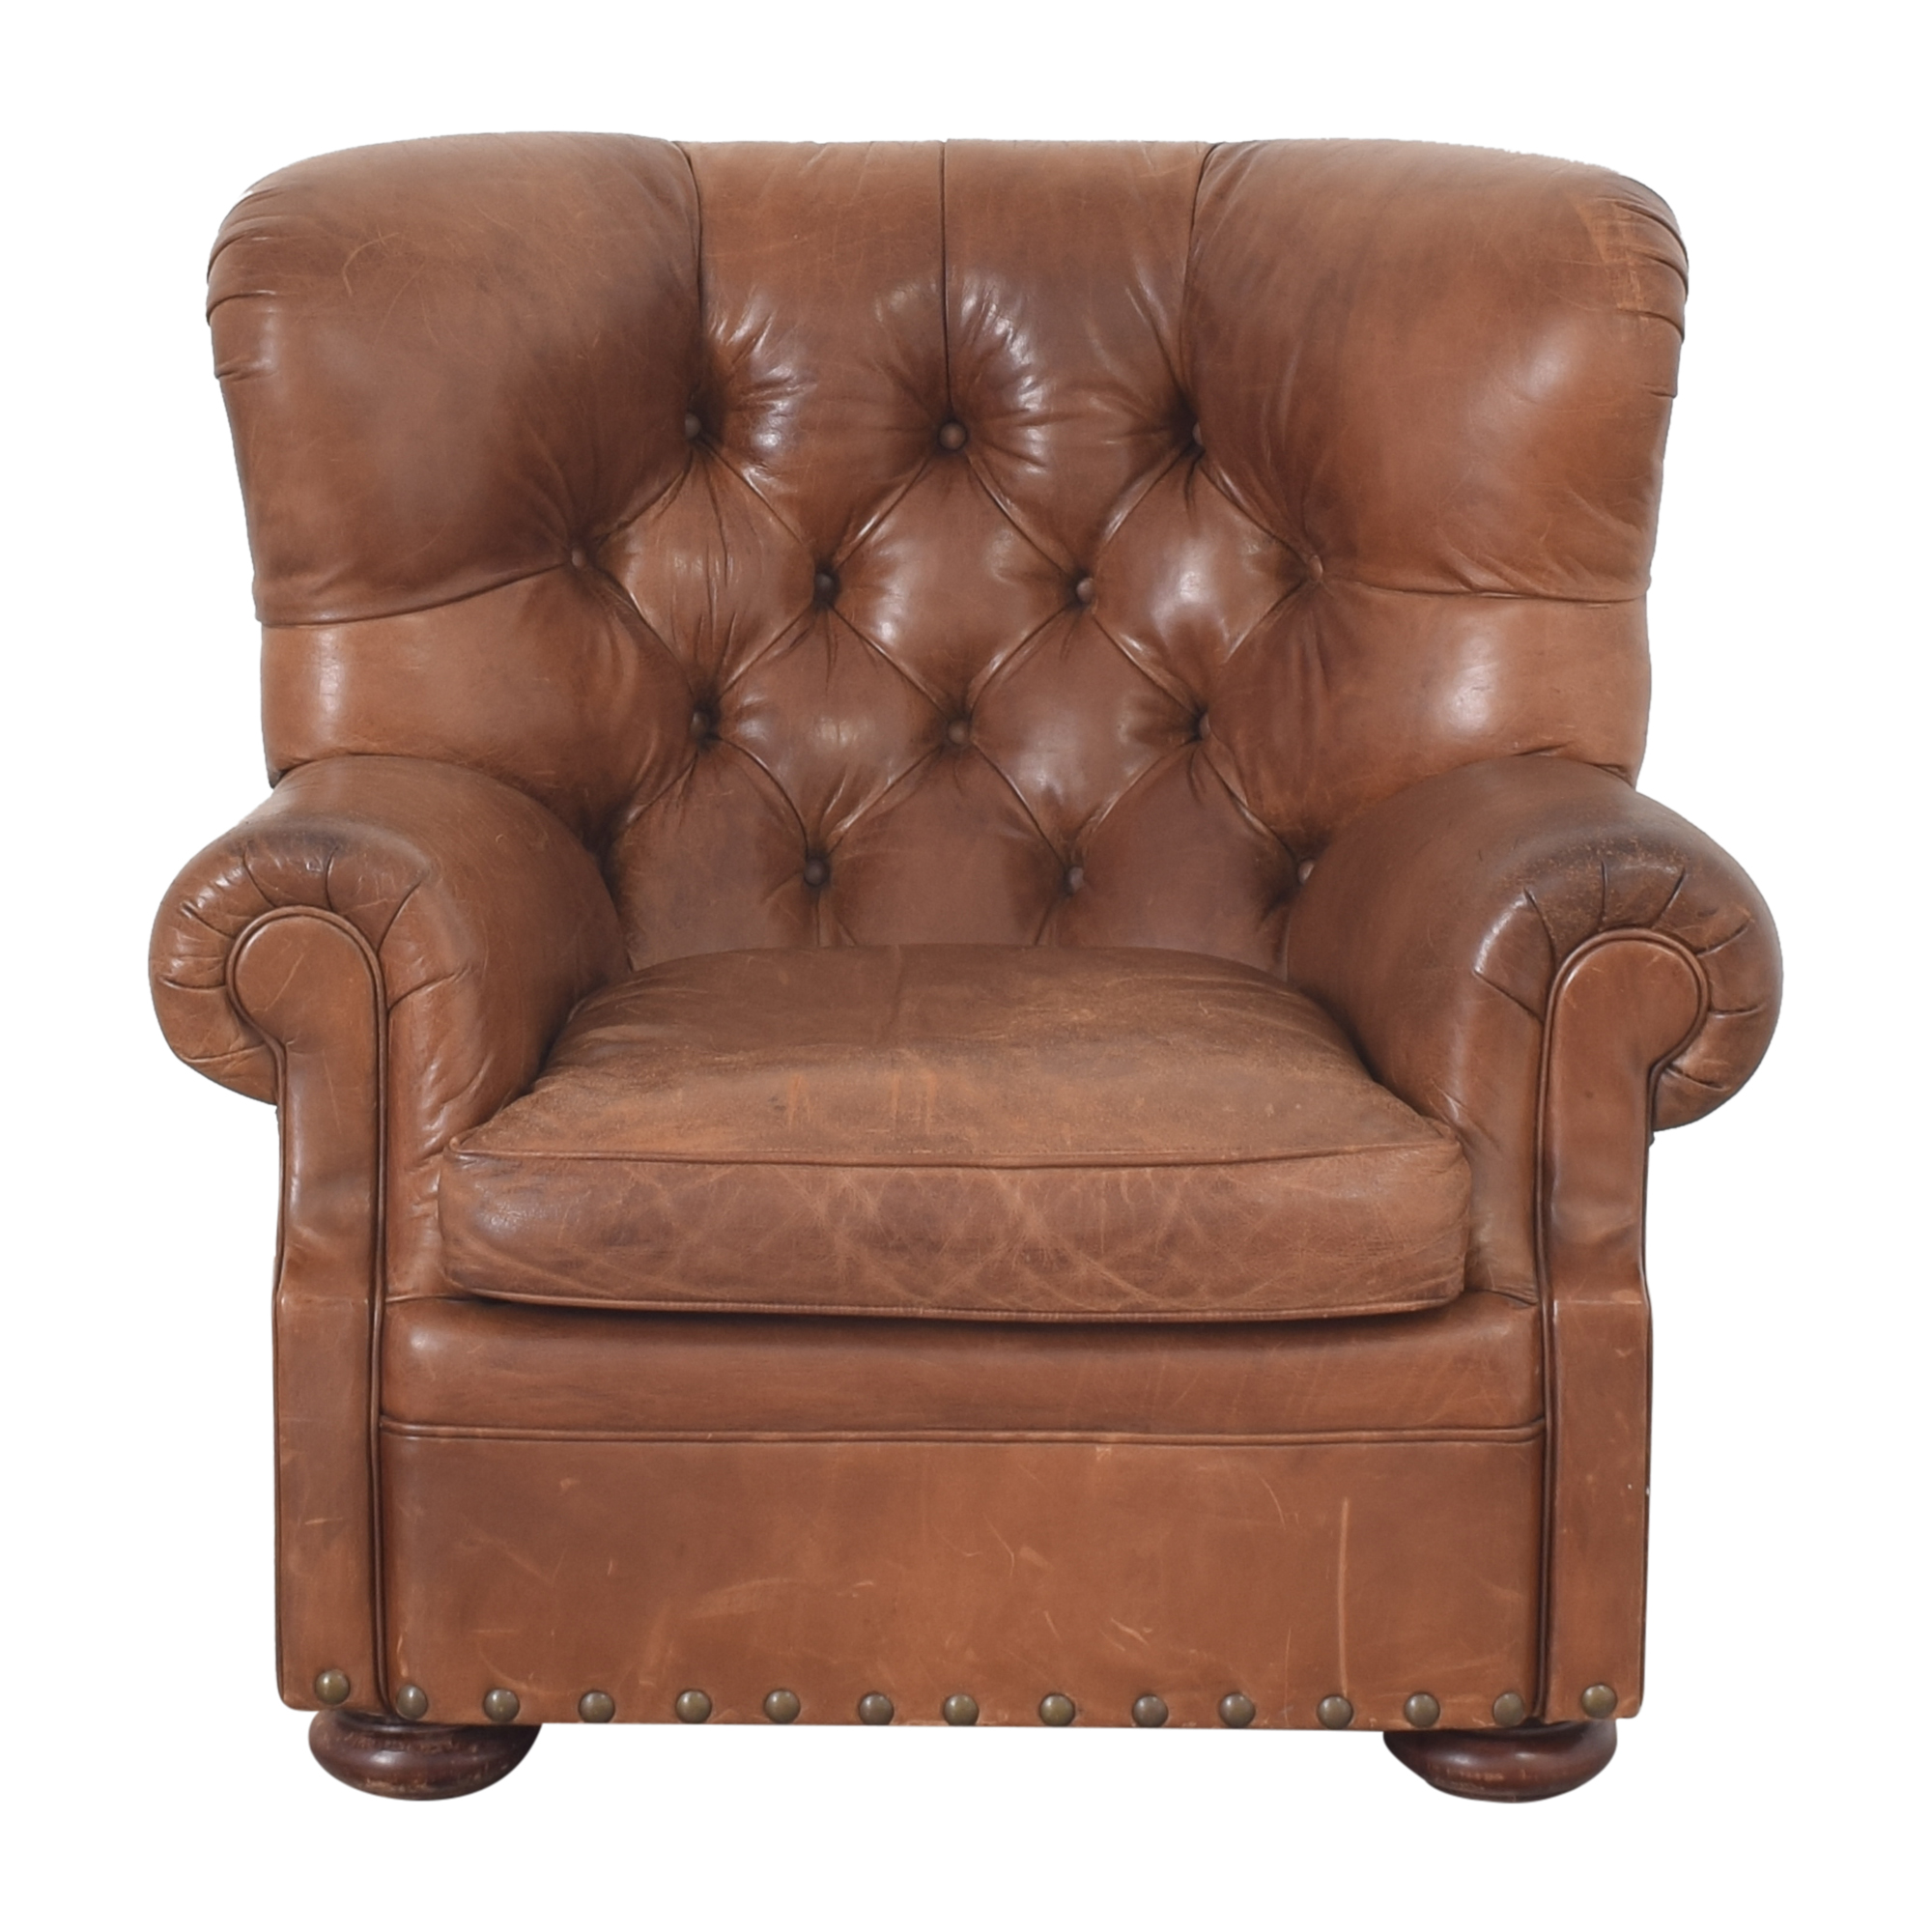 shop Ralph Lauren Home Ralph Lauren Home Writer's Chair online